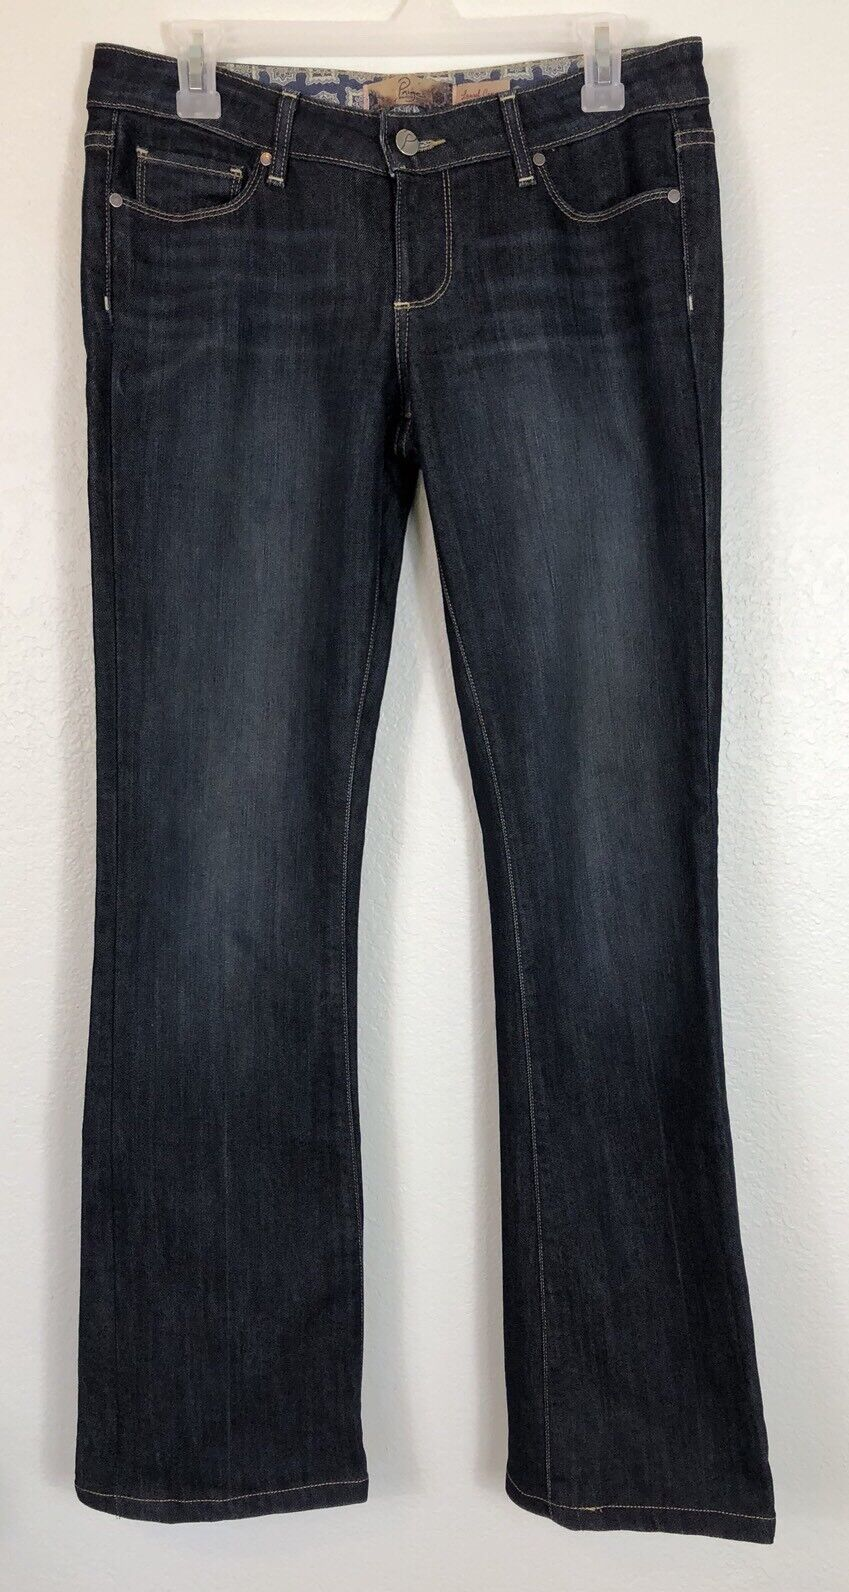 PAIGE DENM Mid Rise Dark Wash Laurel Canyon Bootcut Jeans - Size 27